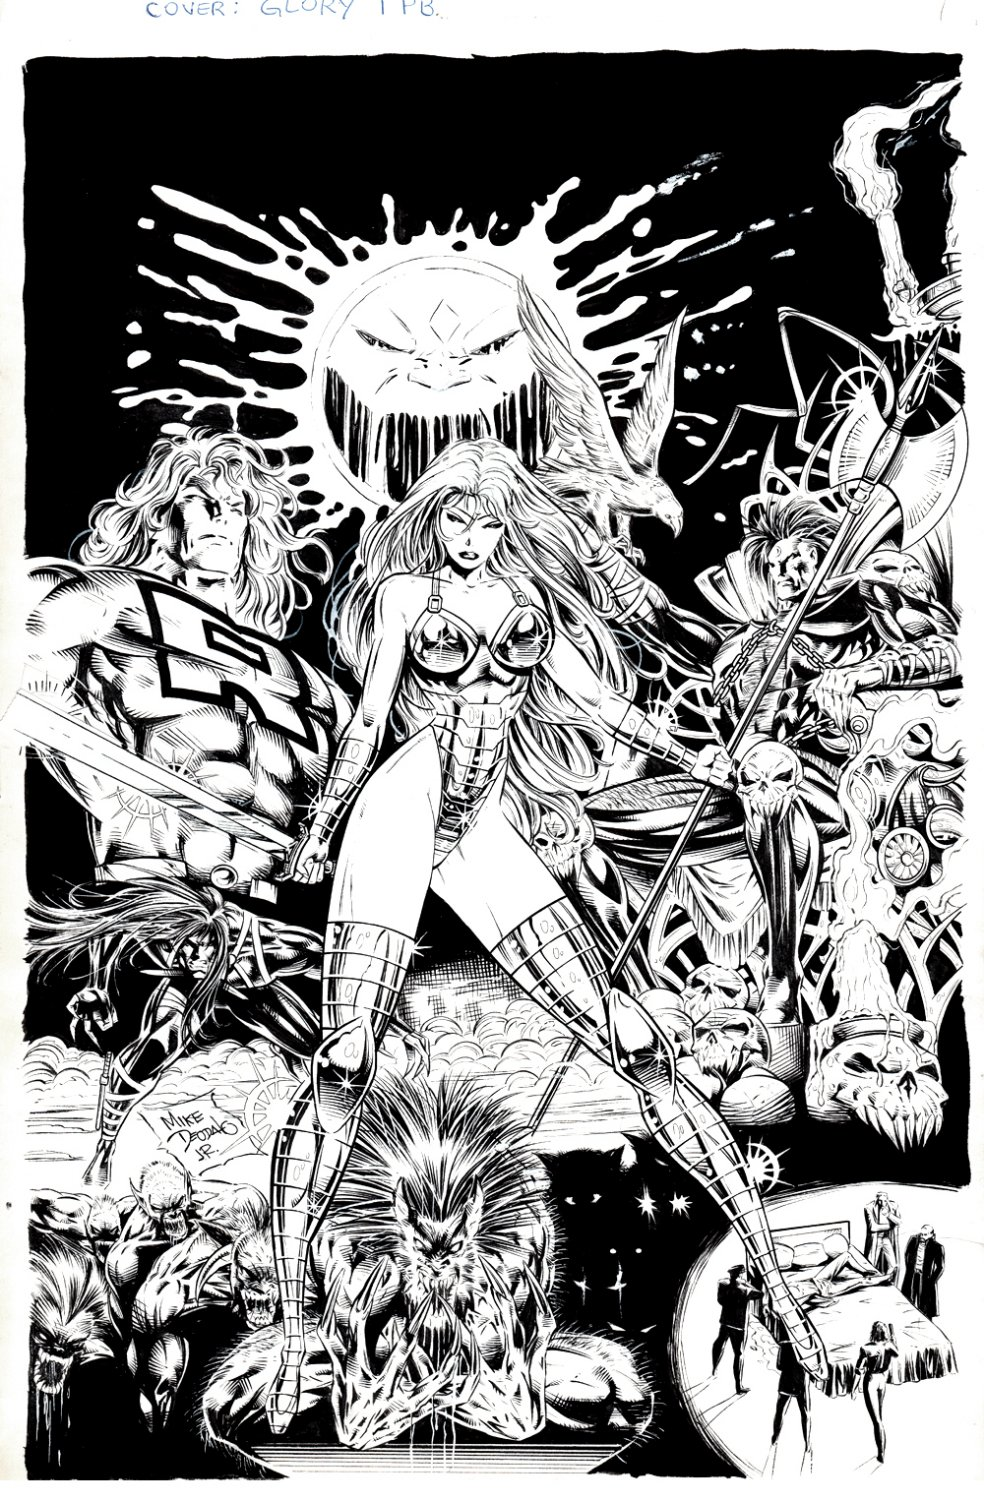 Glory Trade Paperback Cover